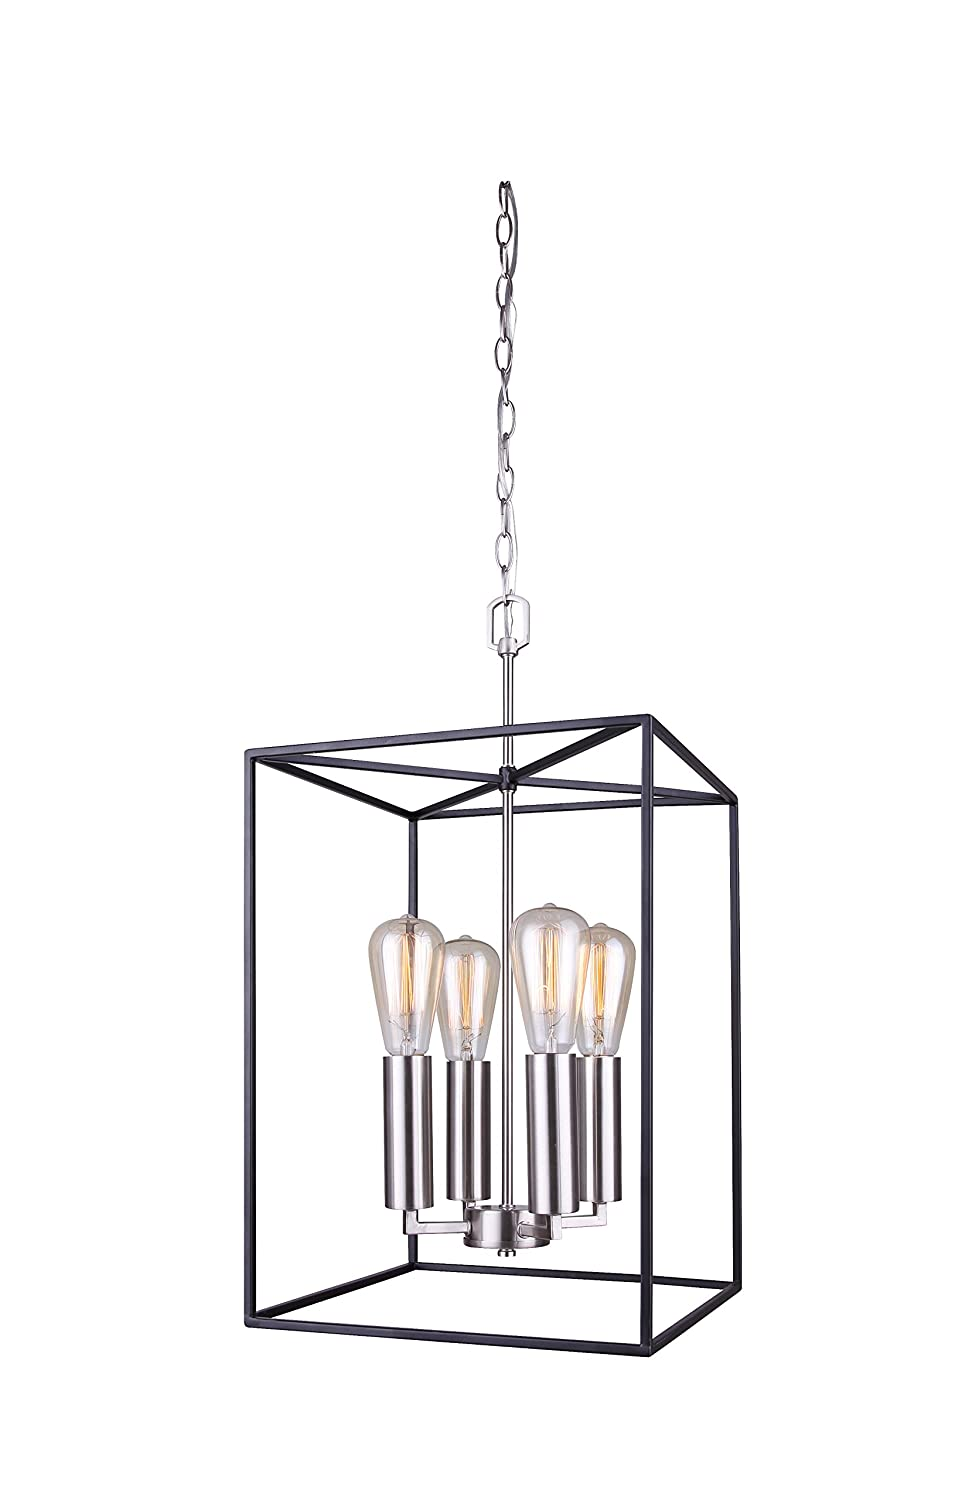 Canram IPL701A04BKN13 Roy Ceiling 4 Light Pendant with 6 Cord